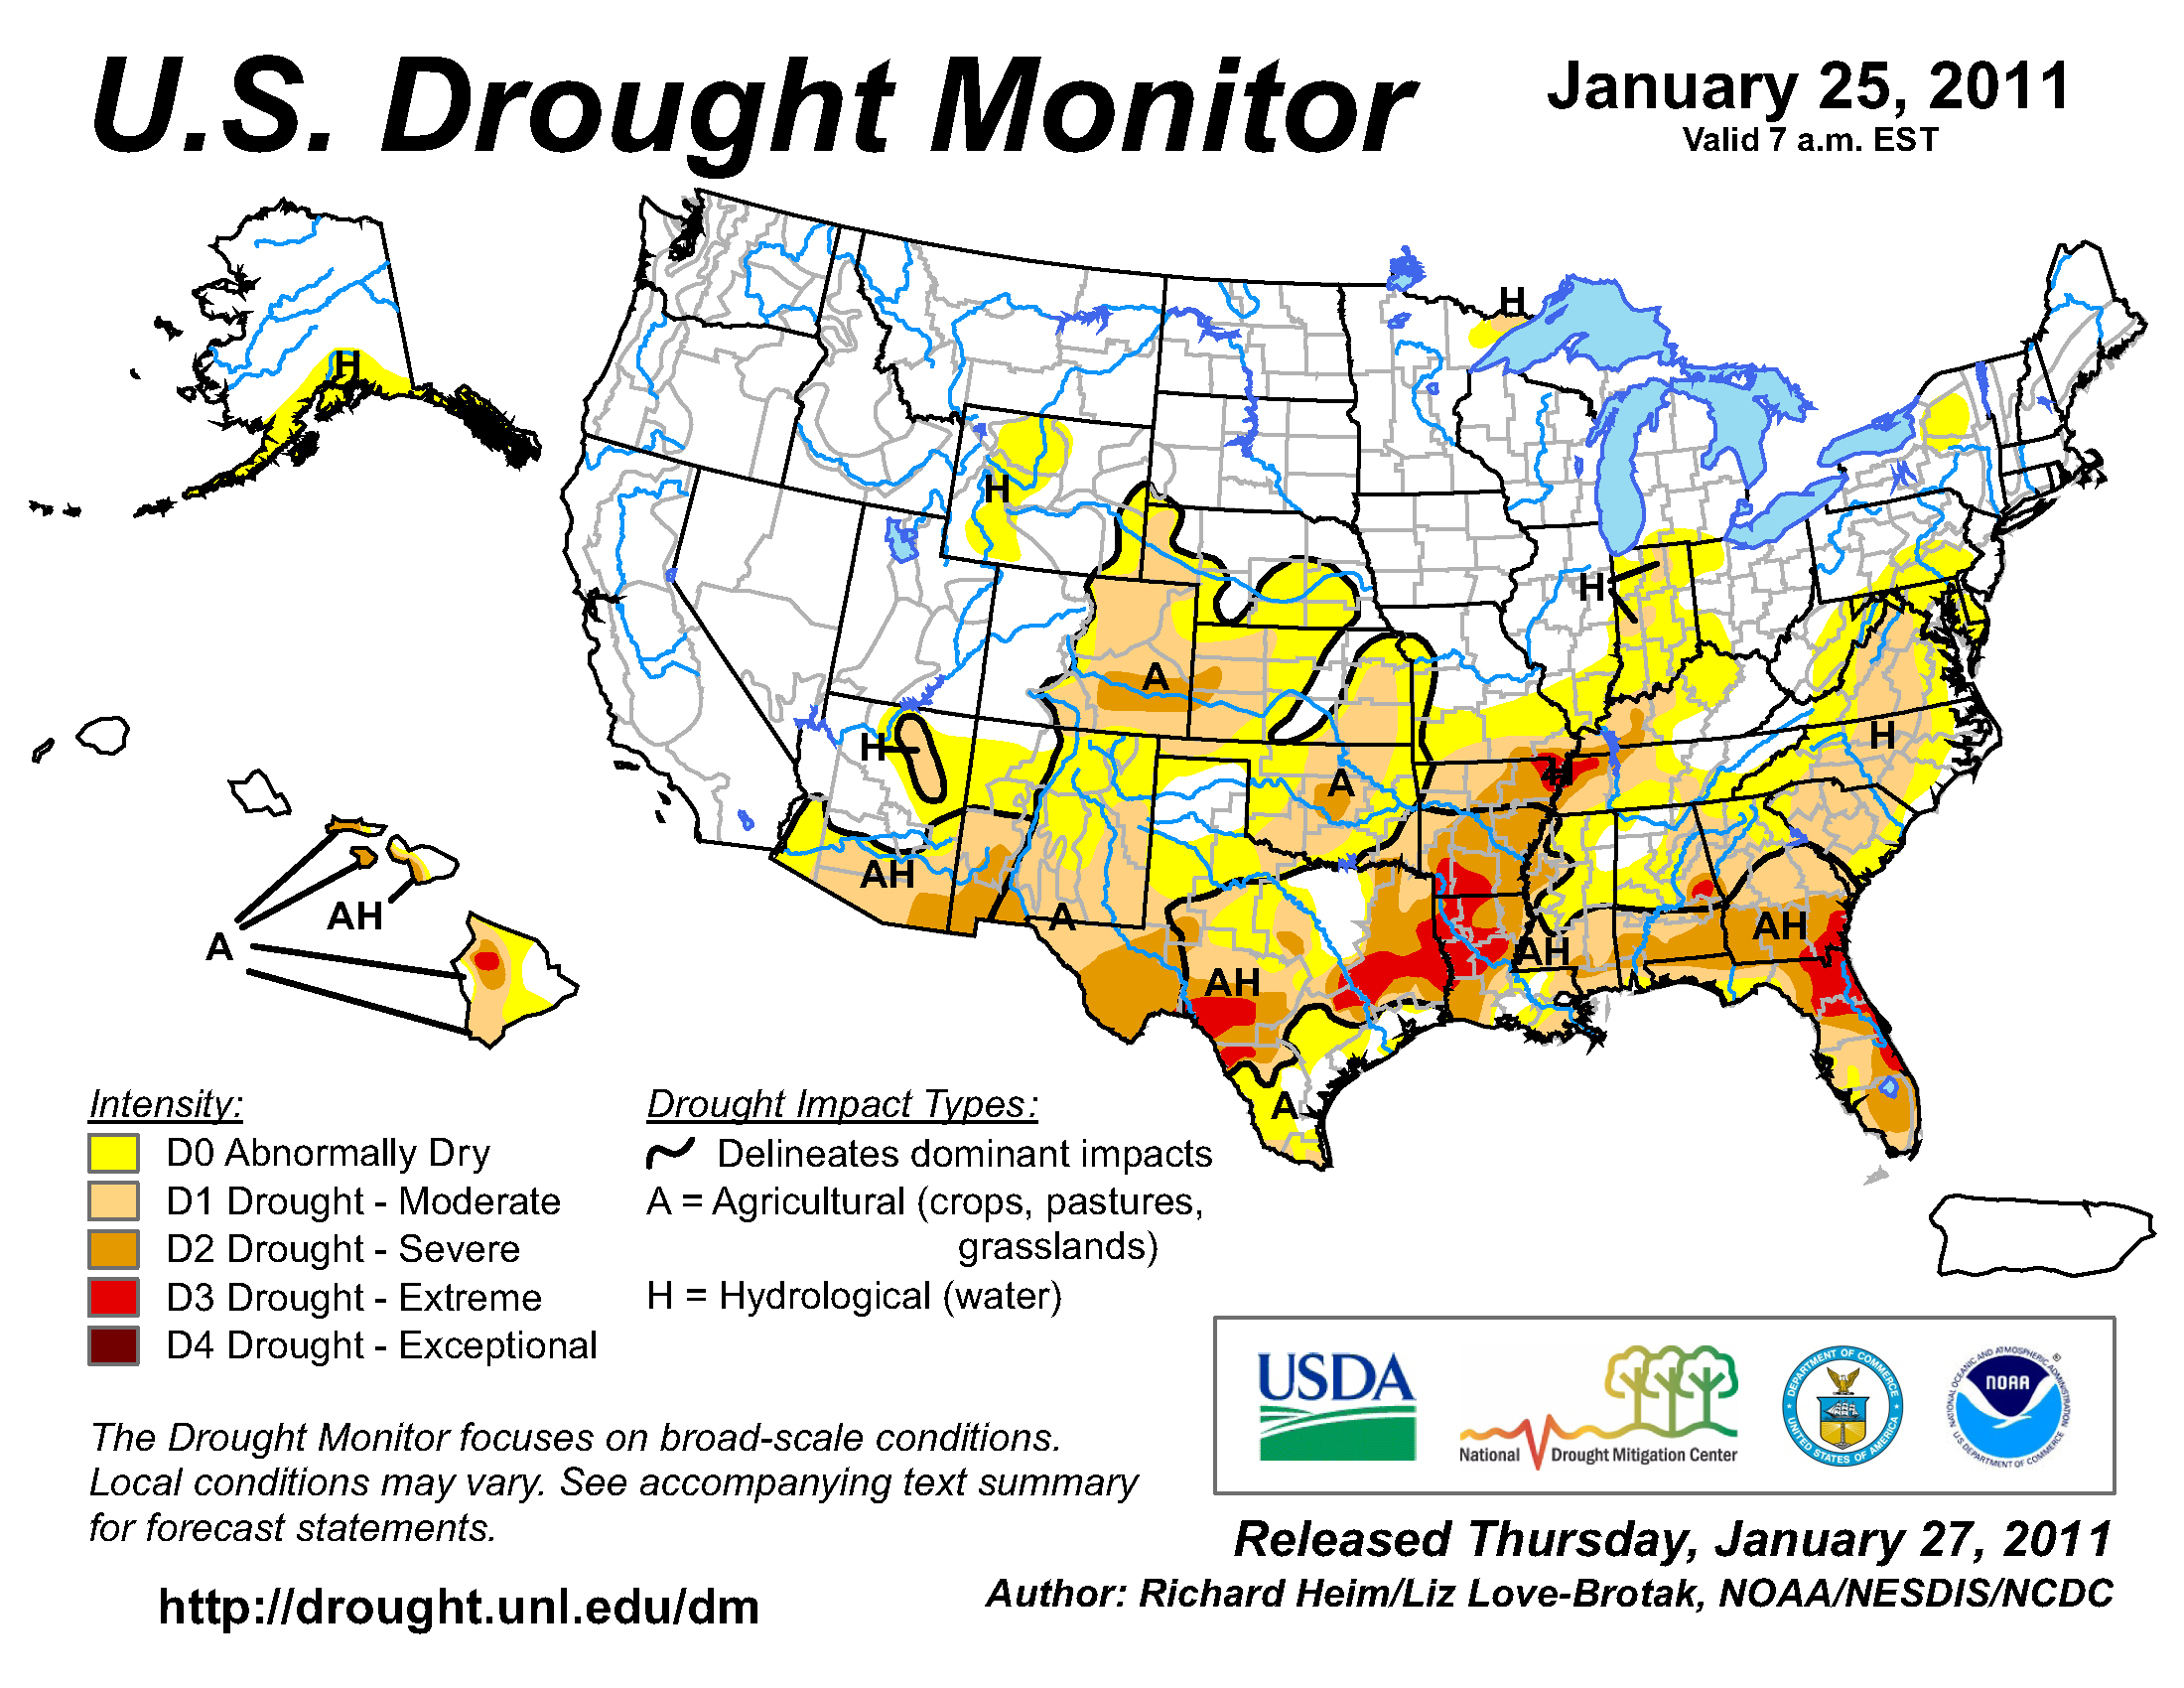 U.S. Drought Monitor map from 25 January 2011